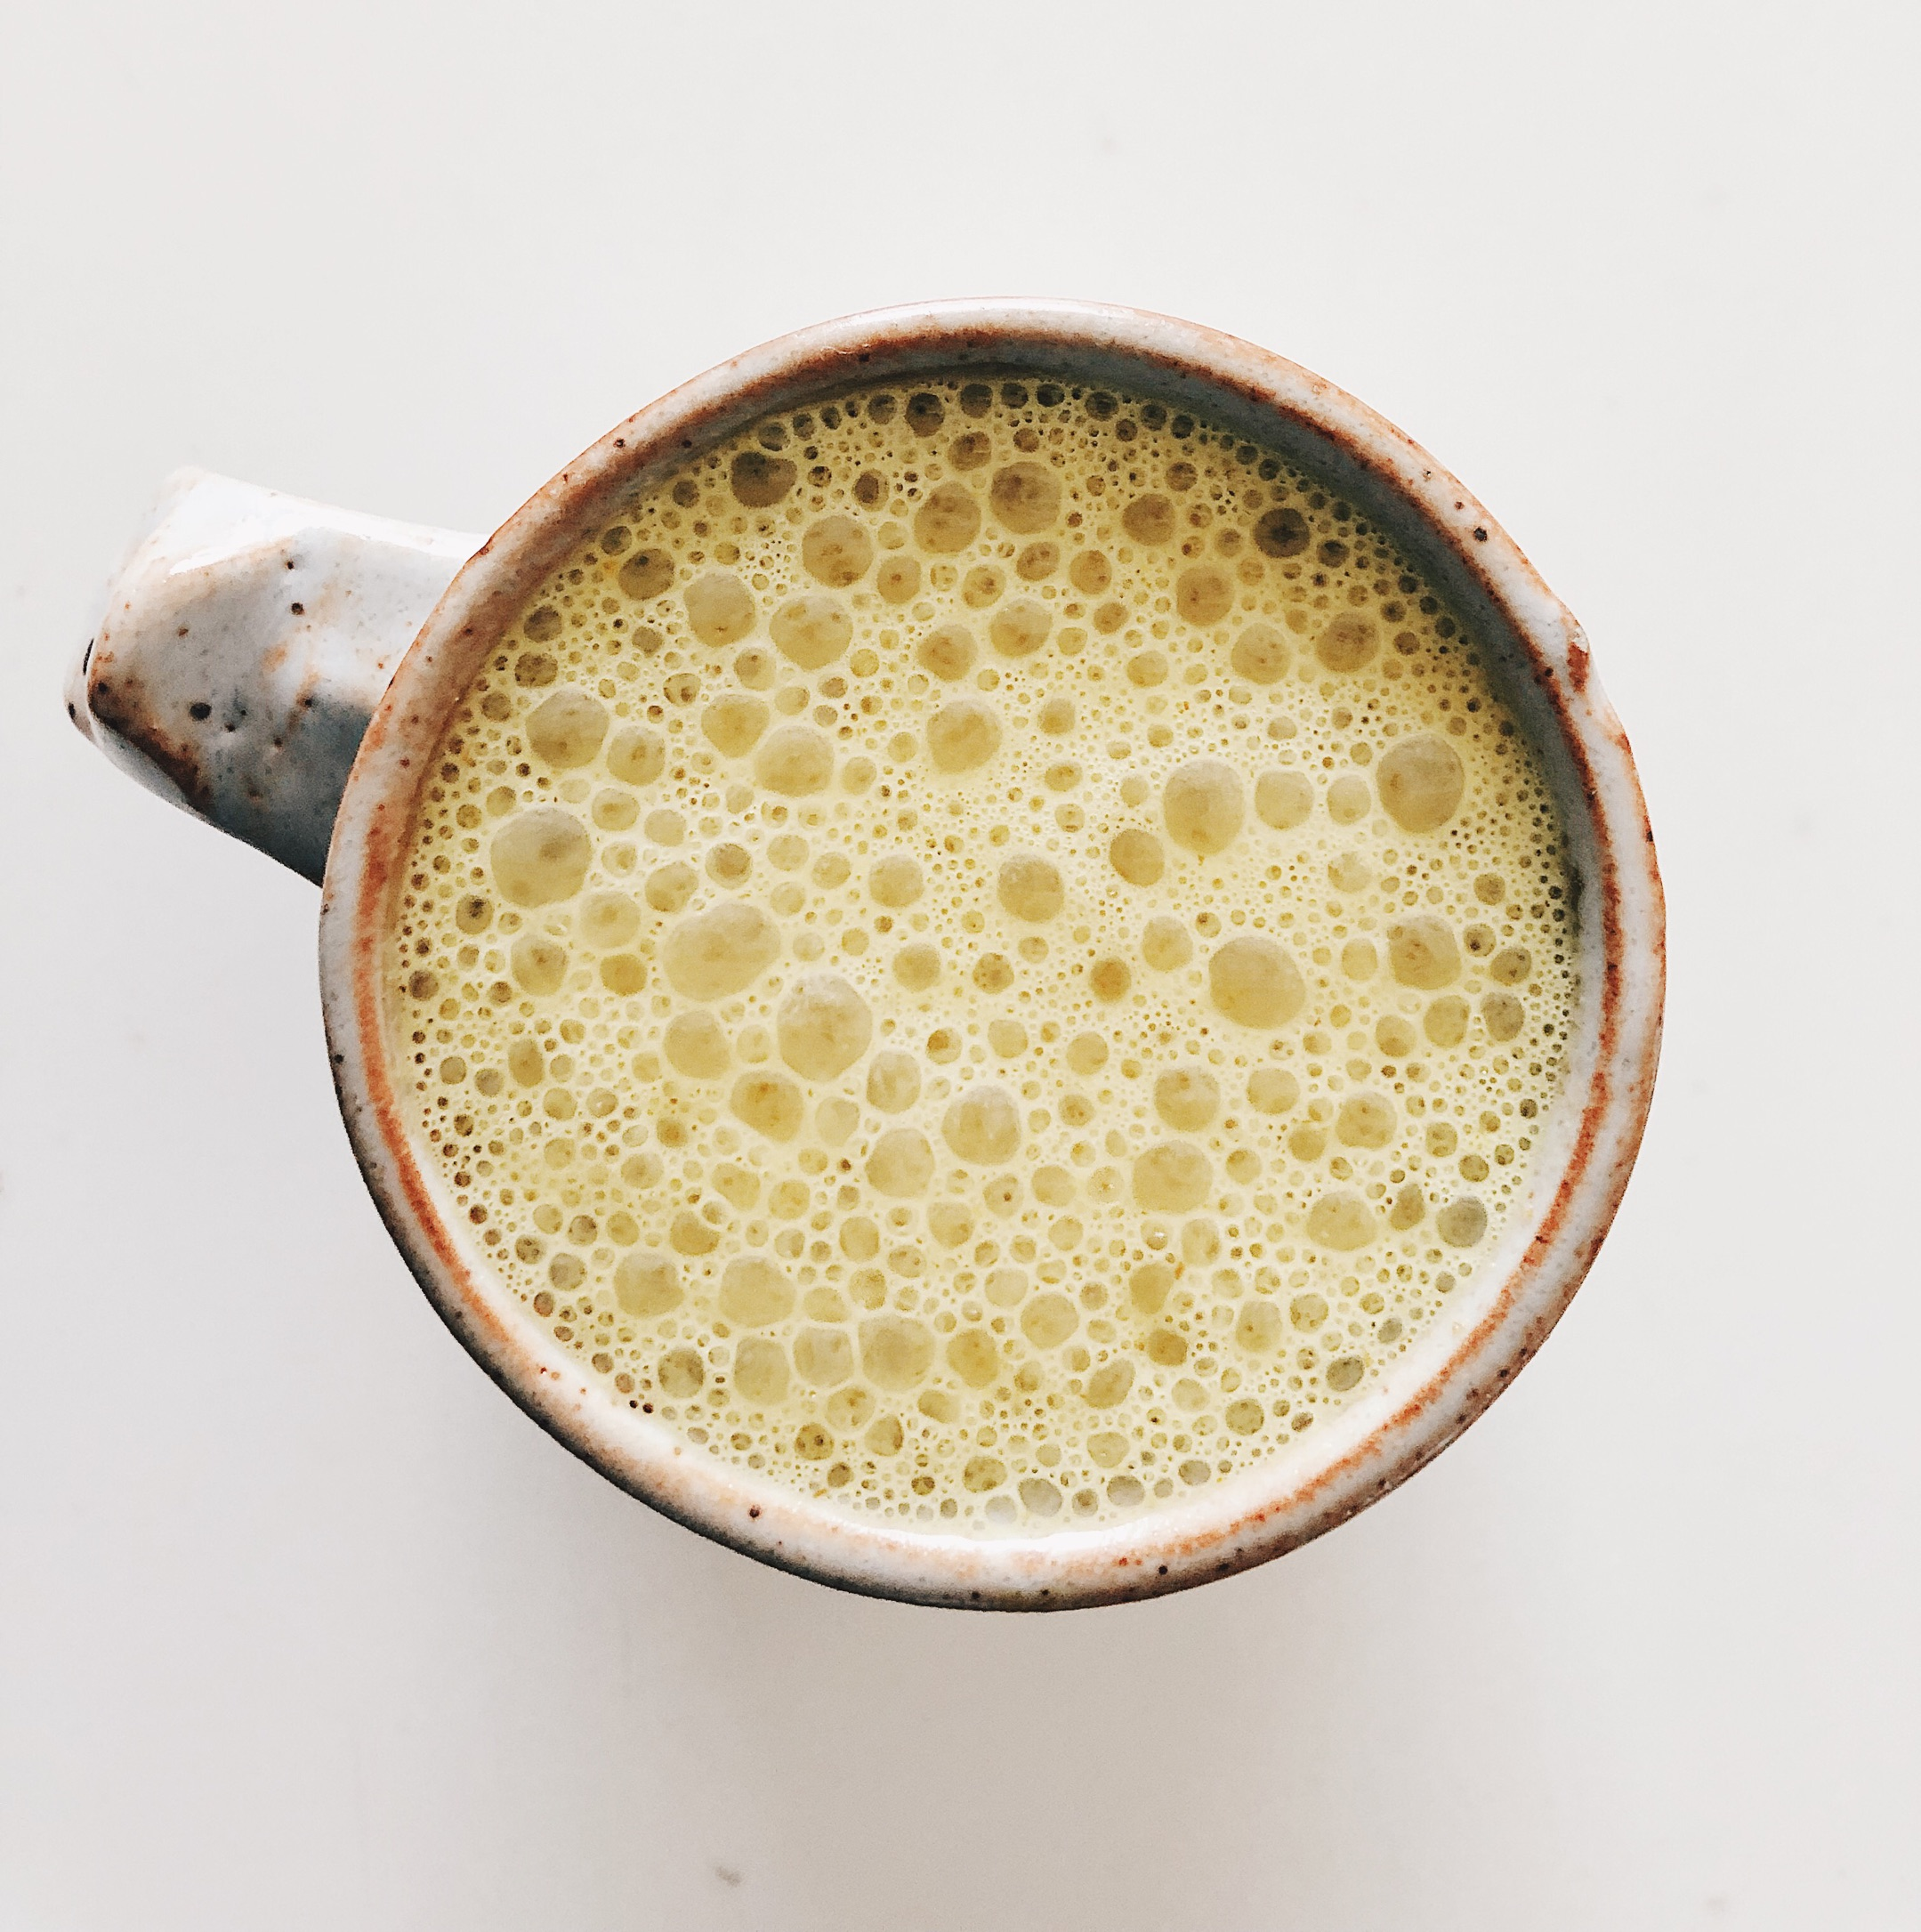 macro latte - ingredients:- 2 tbsp plant-based protein powder- seeds for seed cycling (either flax & pumpkin during your follicular phase or sesame & sunflower during your luteal phase)-2 tsp matcha powder-1 packet of four sigmatic golden latte or any elixer-20 oz. of hot water (this makes 2 or 3 cups)-Splash of oat/nut milk optional